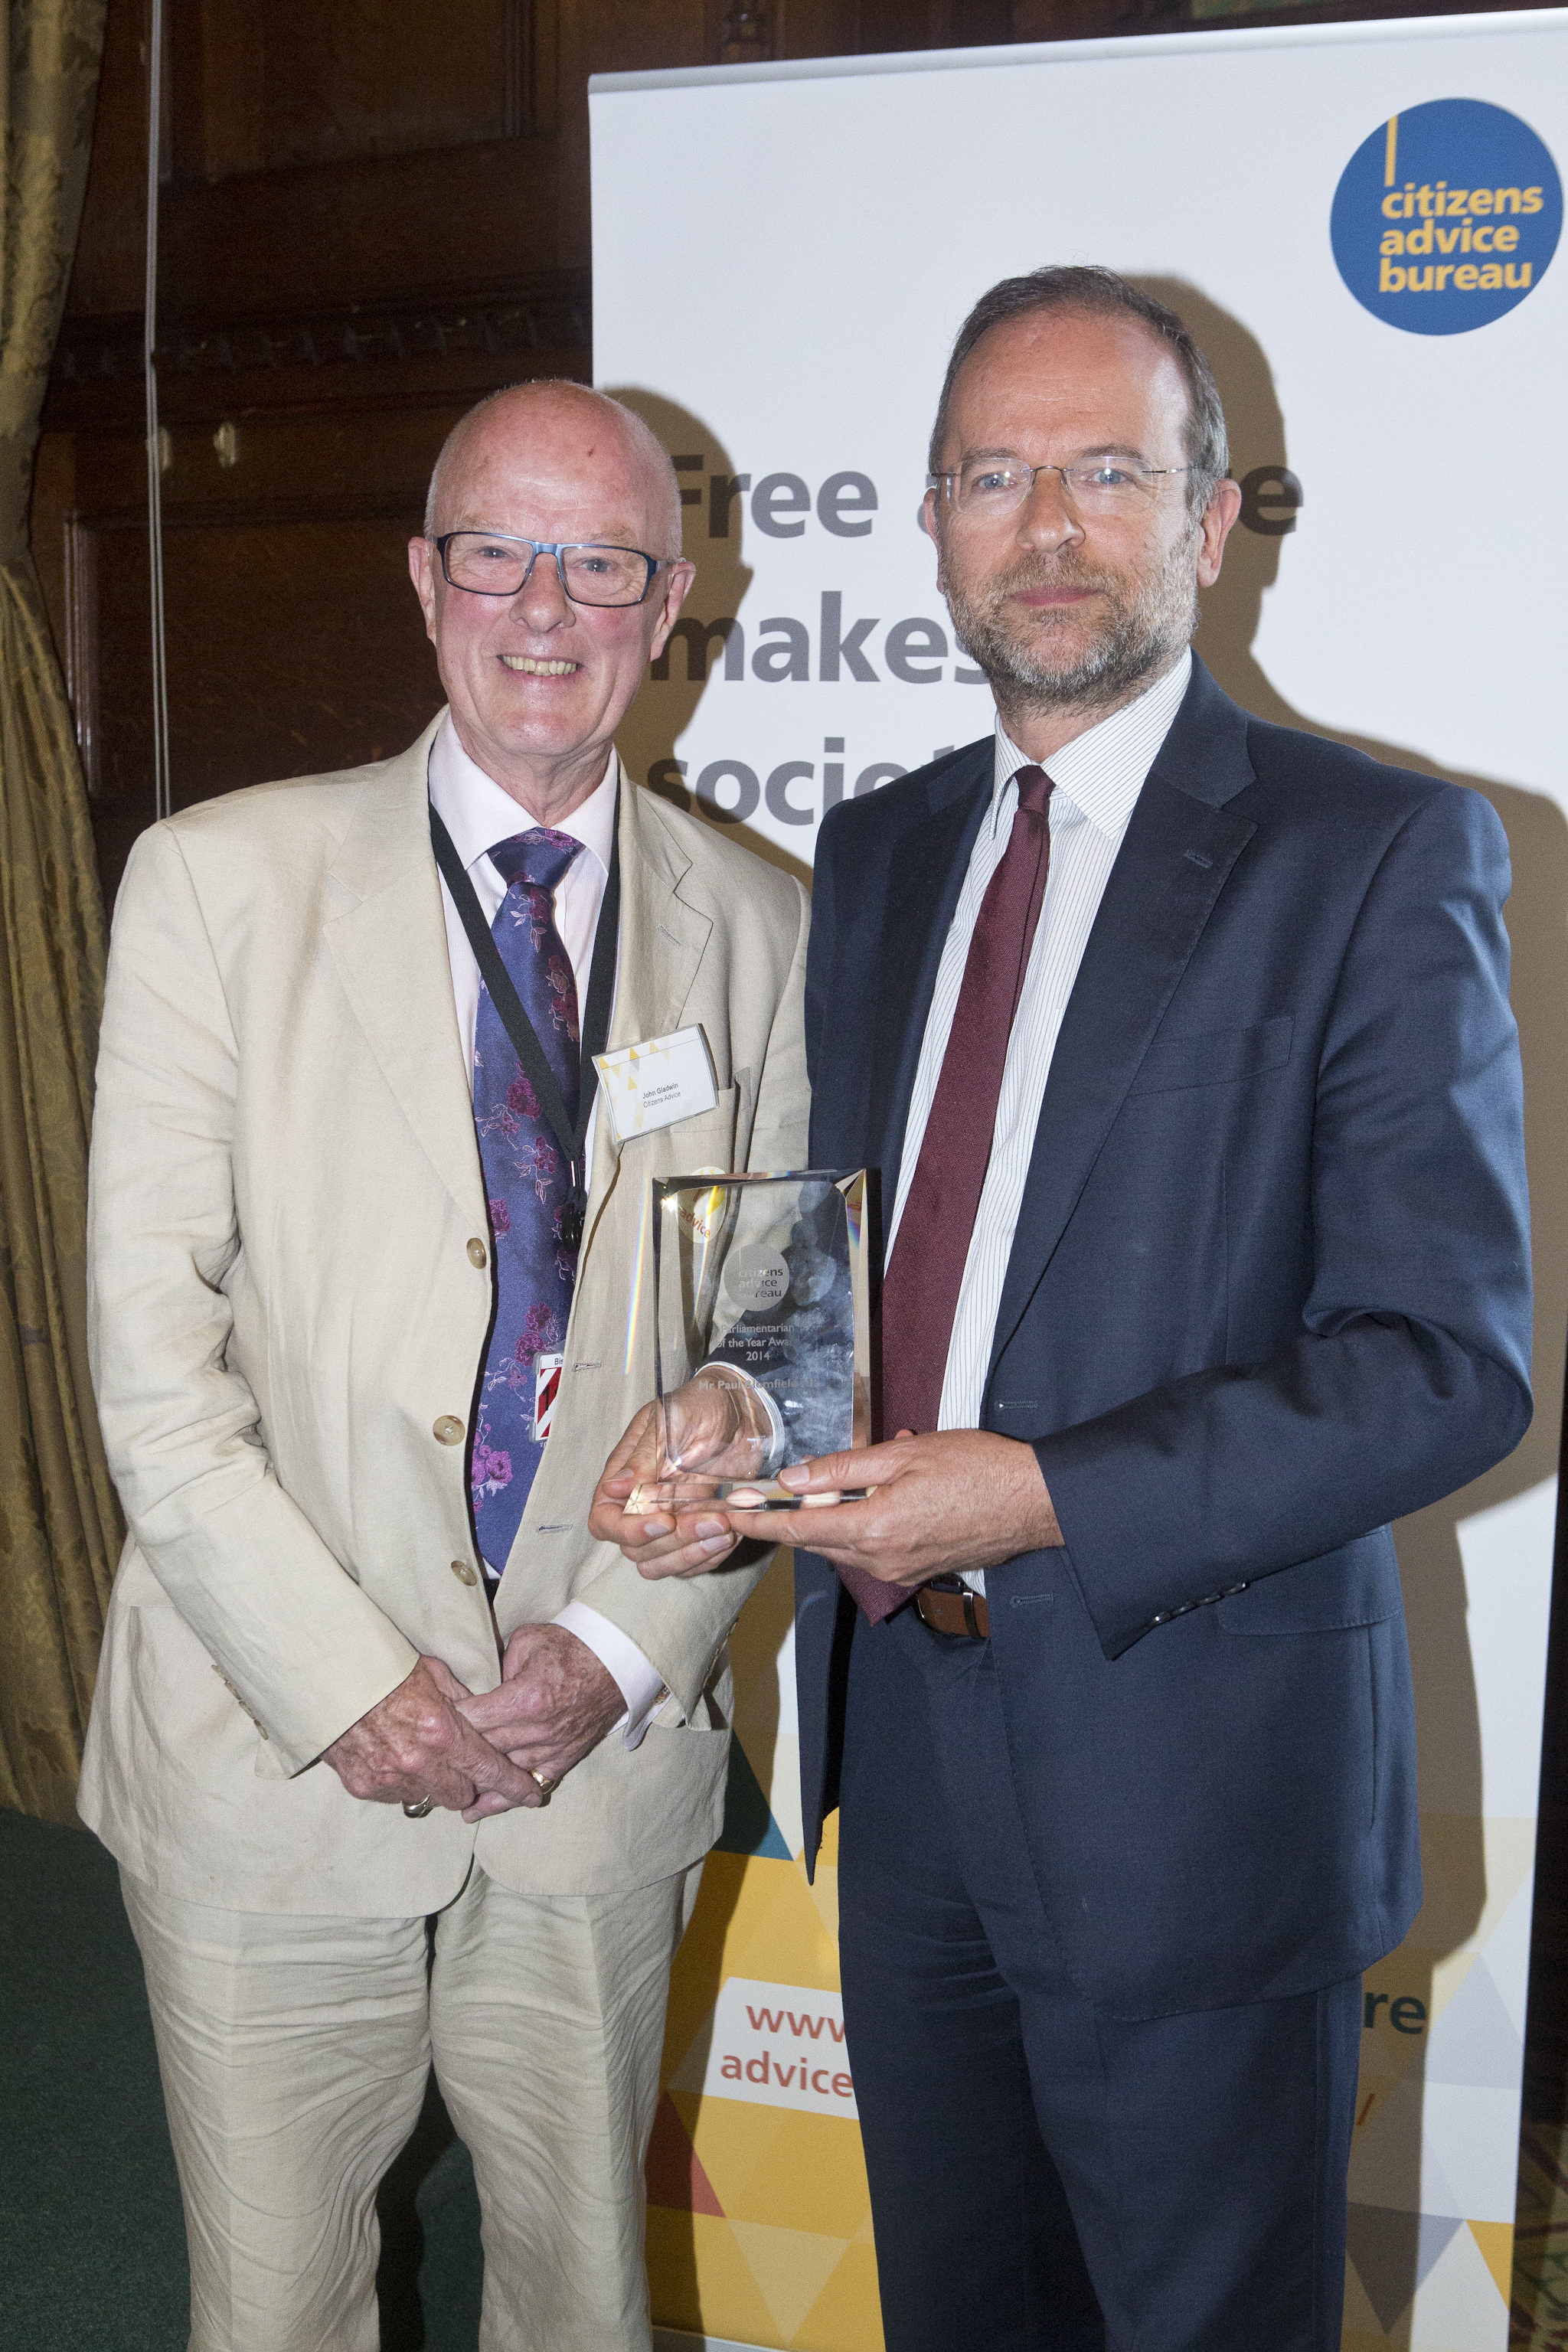 Paul_with_Rt_Rev_John_Gladwin__Chairman_of_Citizens_Advice_accepting_award.jpg